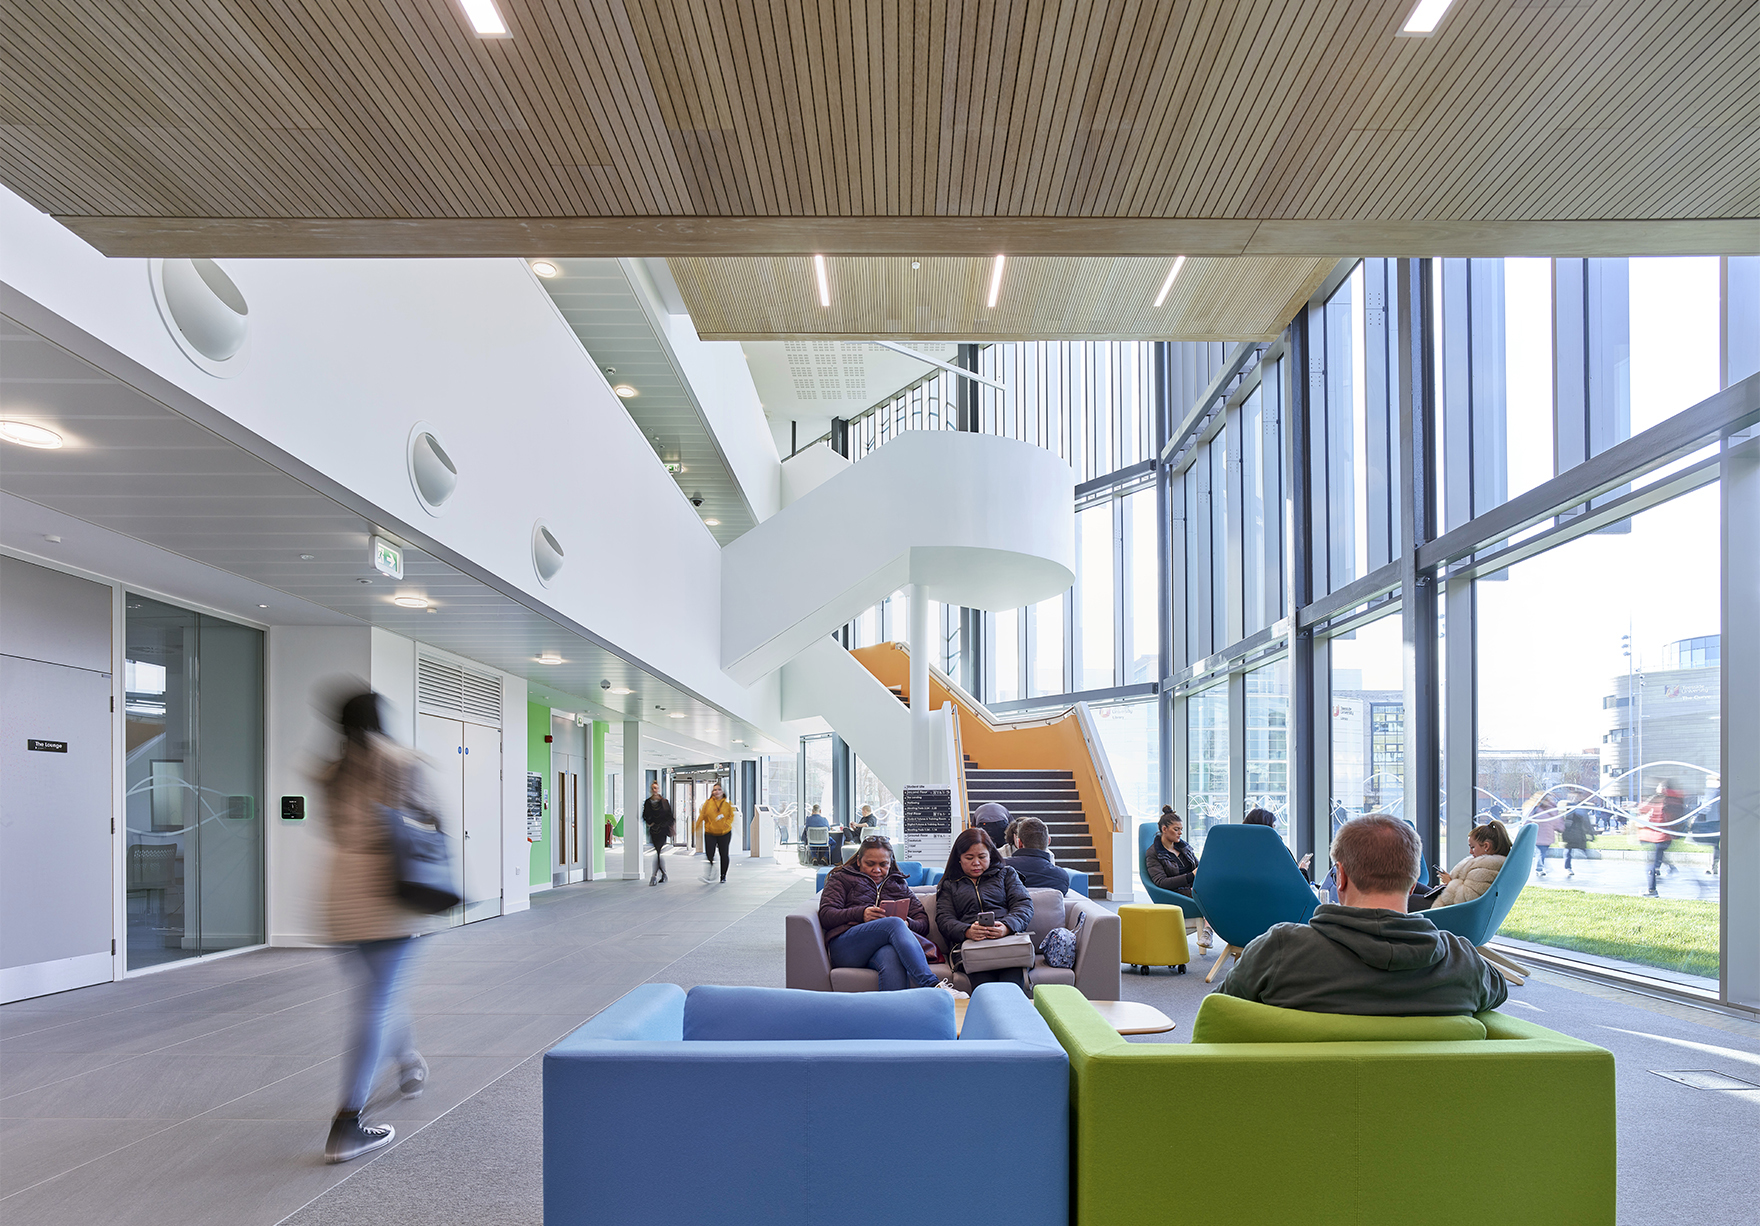 Student Life Building Rics Social Impact Award Faulknerbrowns Architects Education Social Wellbeing Space Lh